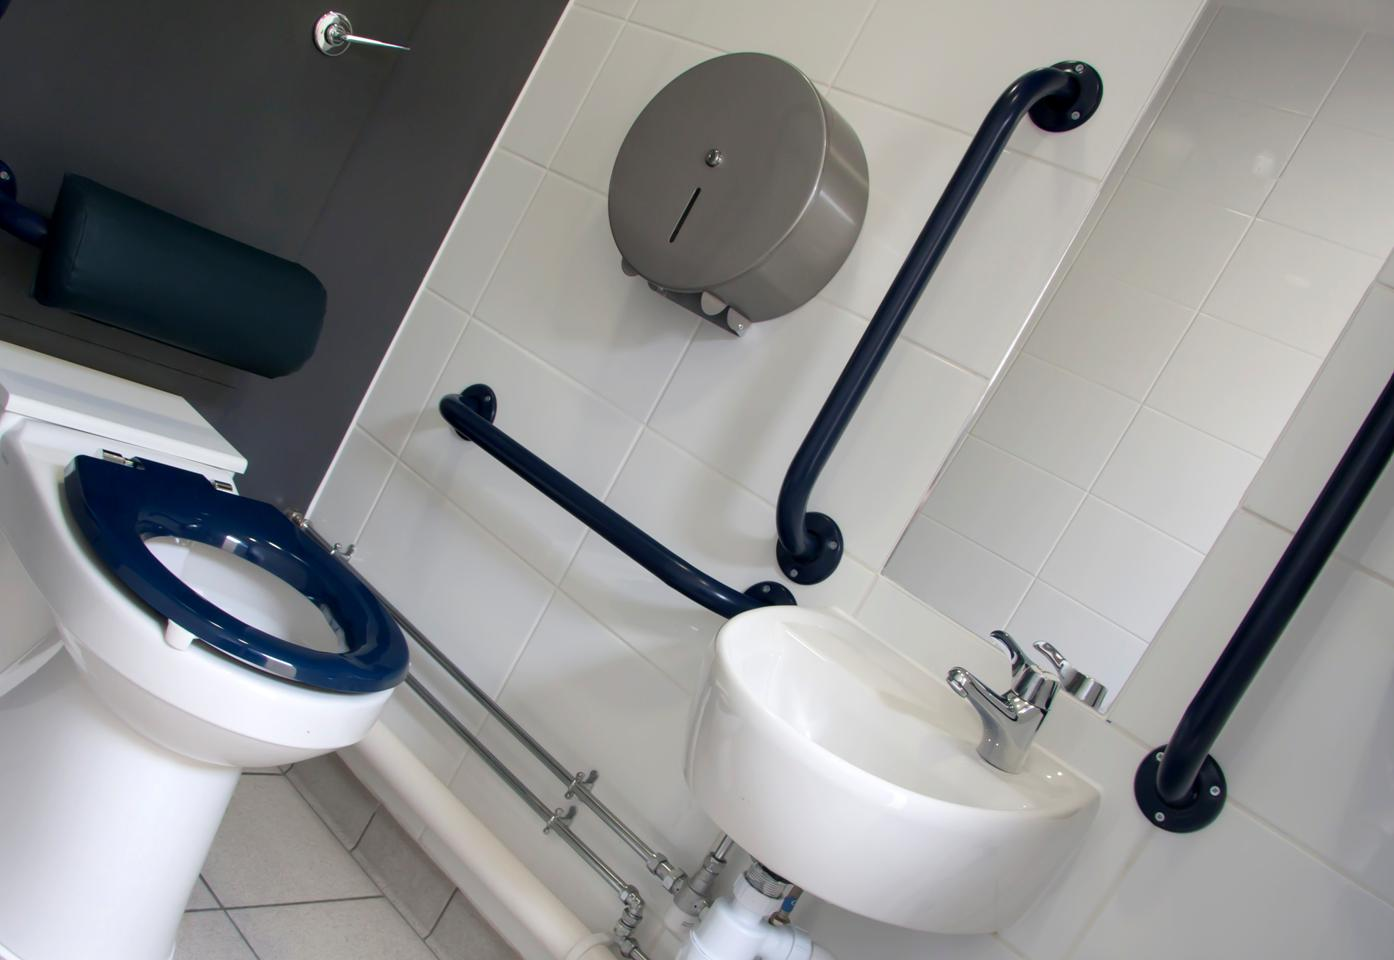 Washrooms Accessible For All